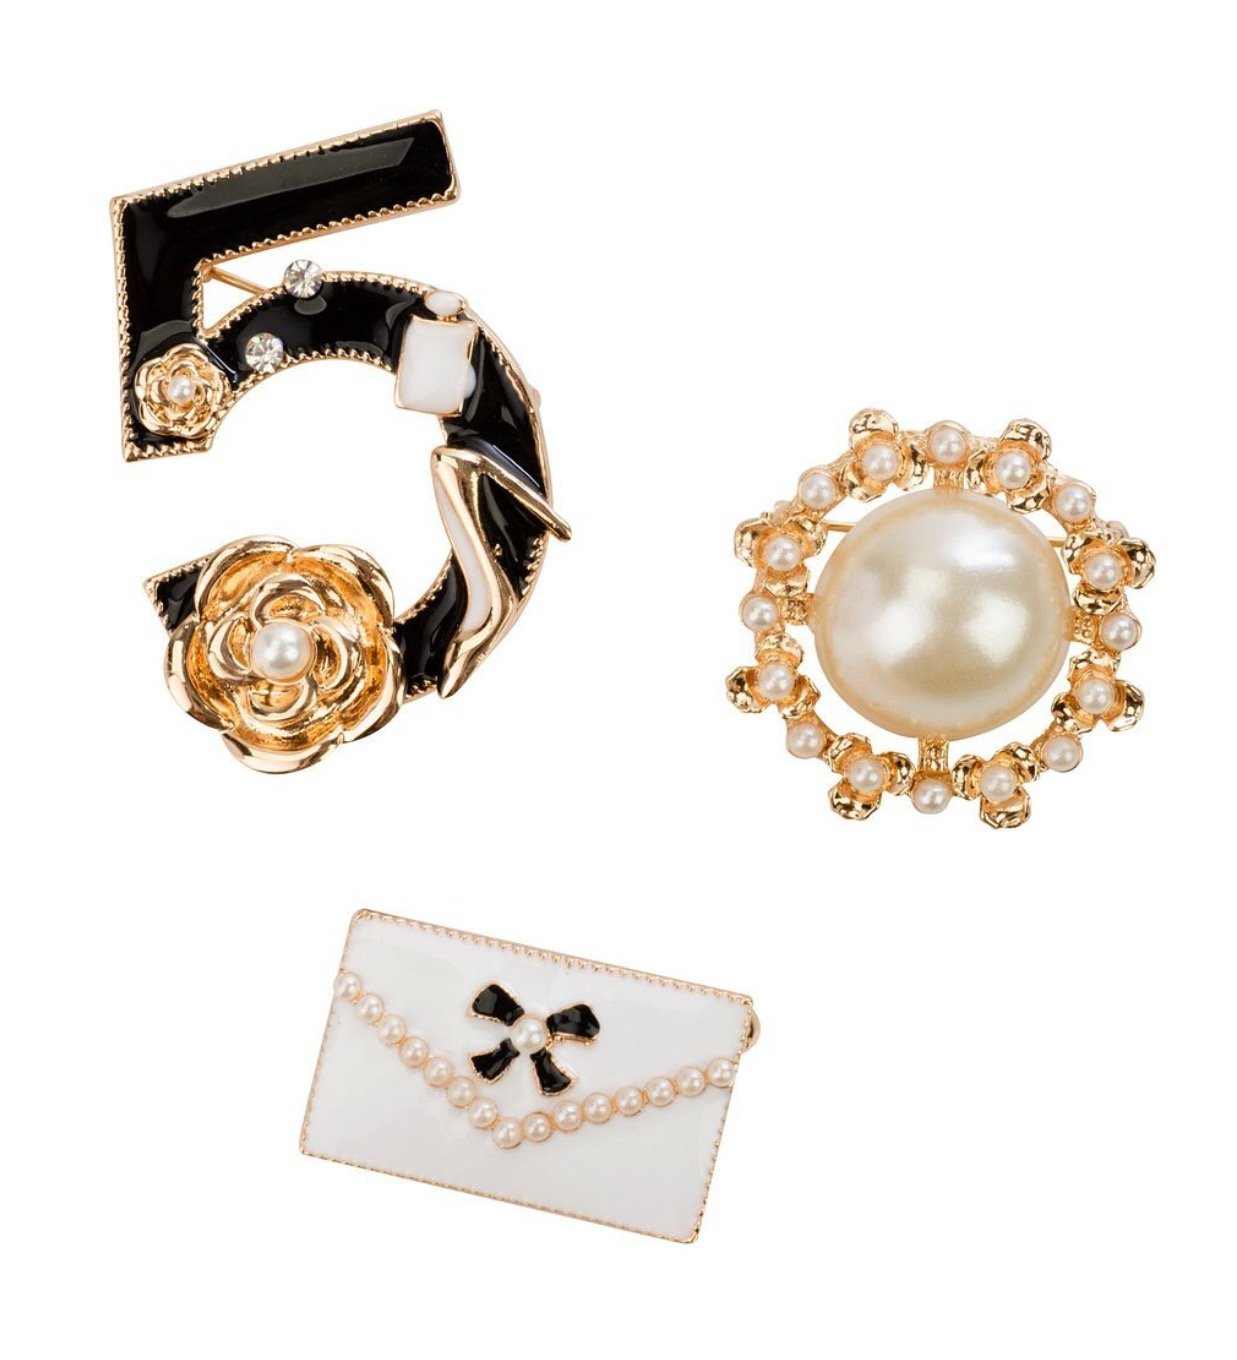 FASHION JEWELRY-COCO PIN SET CC-05 VINTAGE STYLE JACKET-COLLAR BROOCH BUTTON 2017 TREND